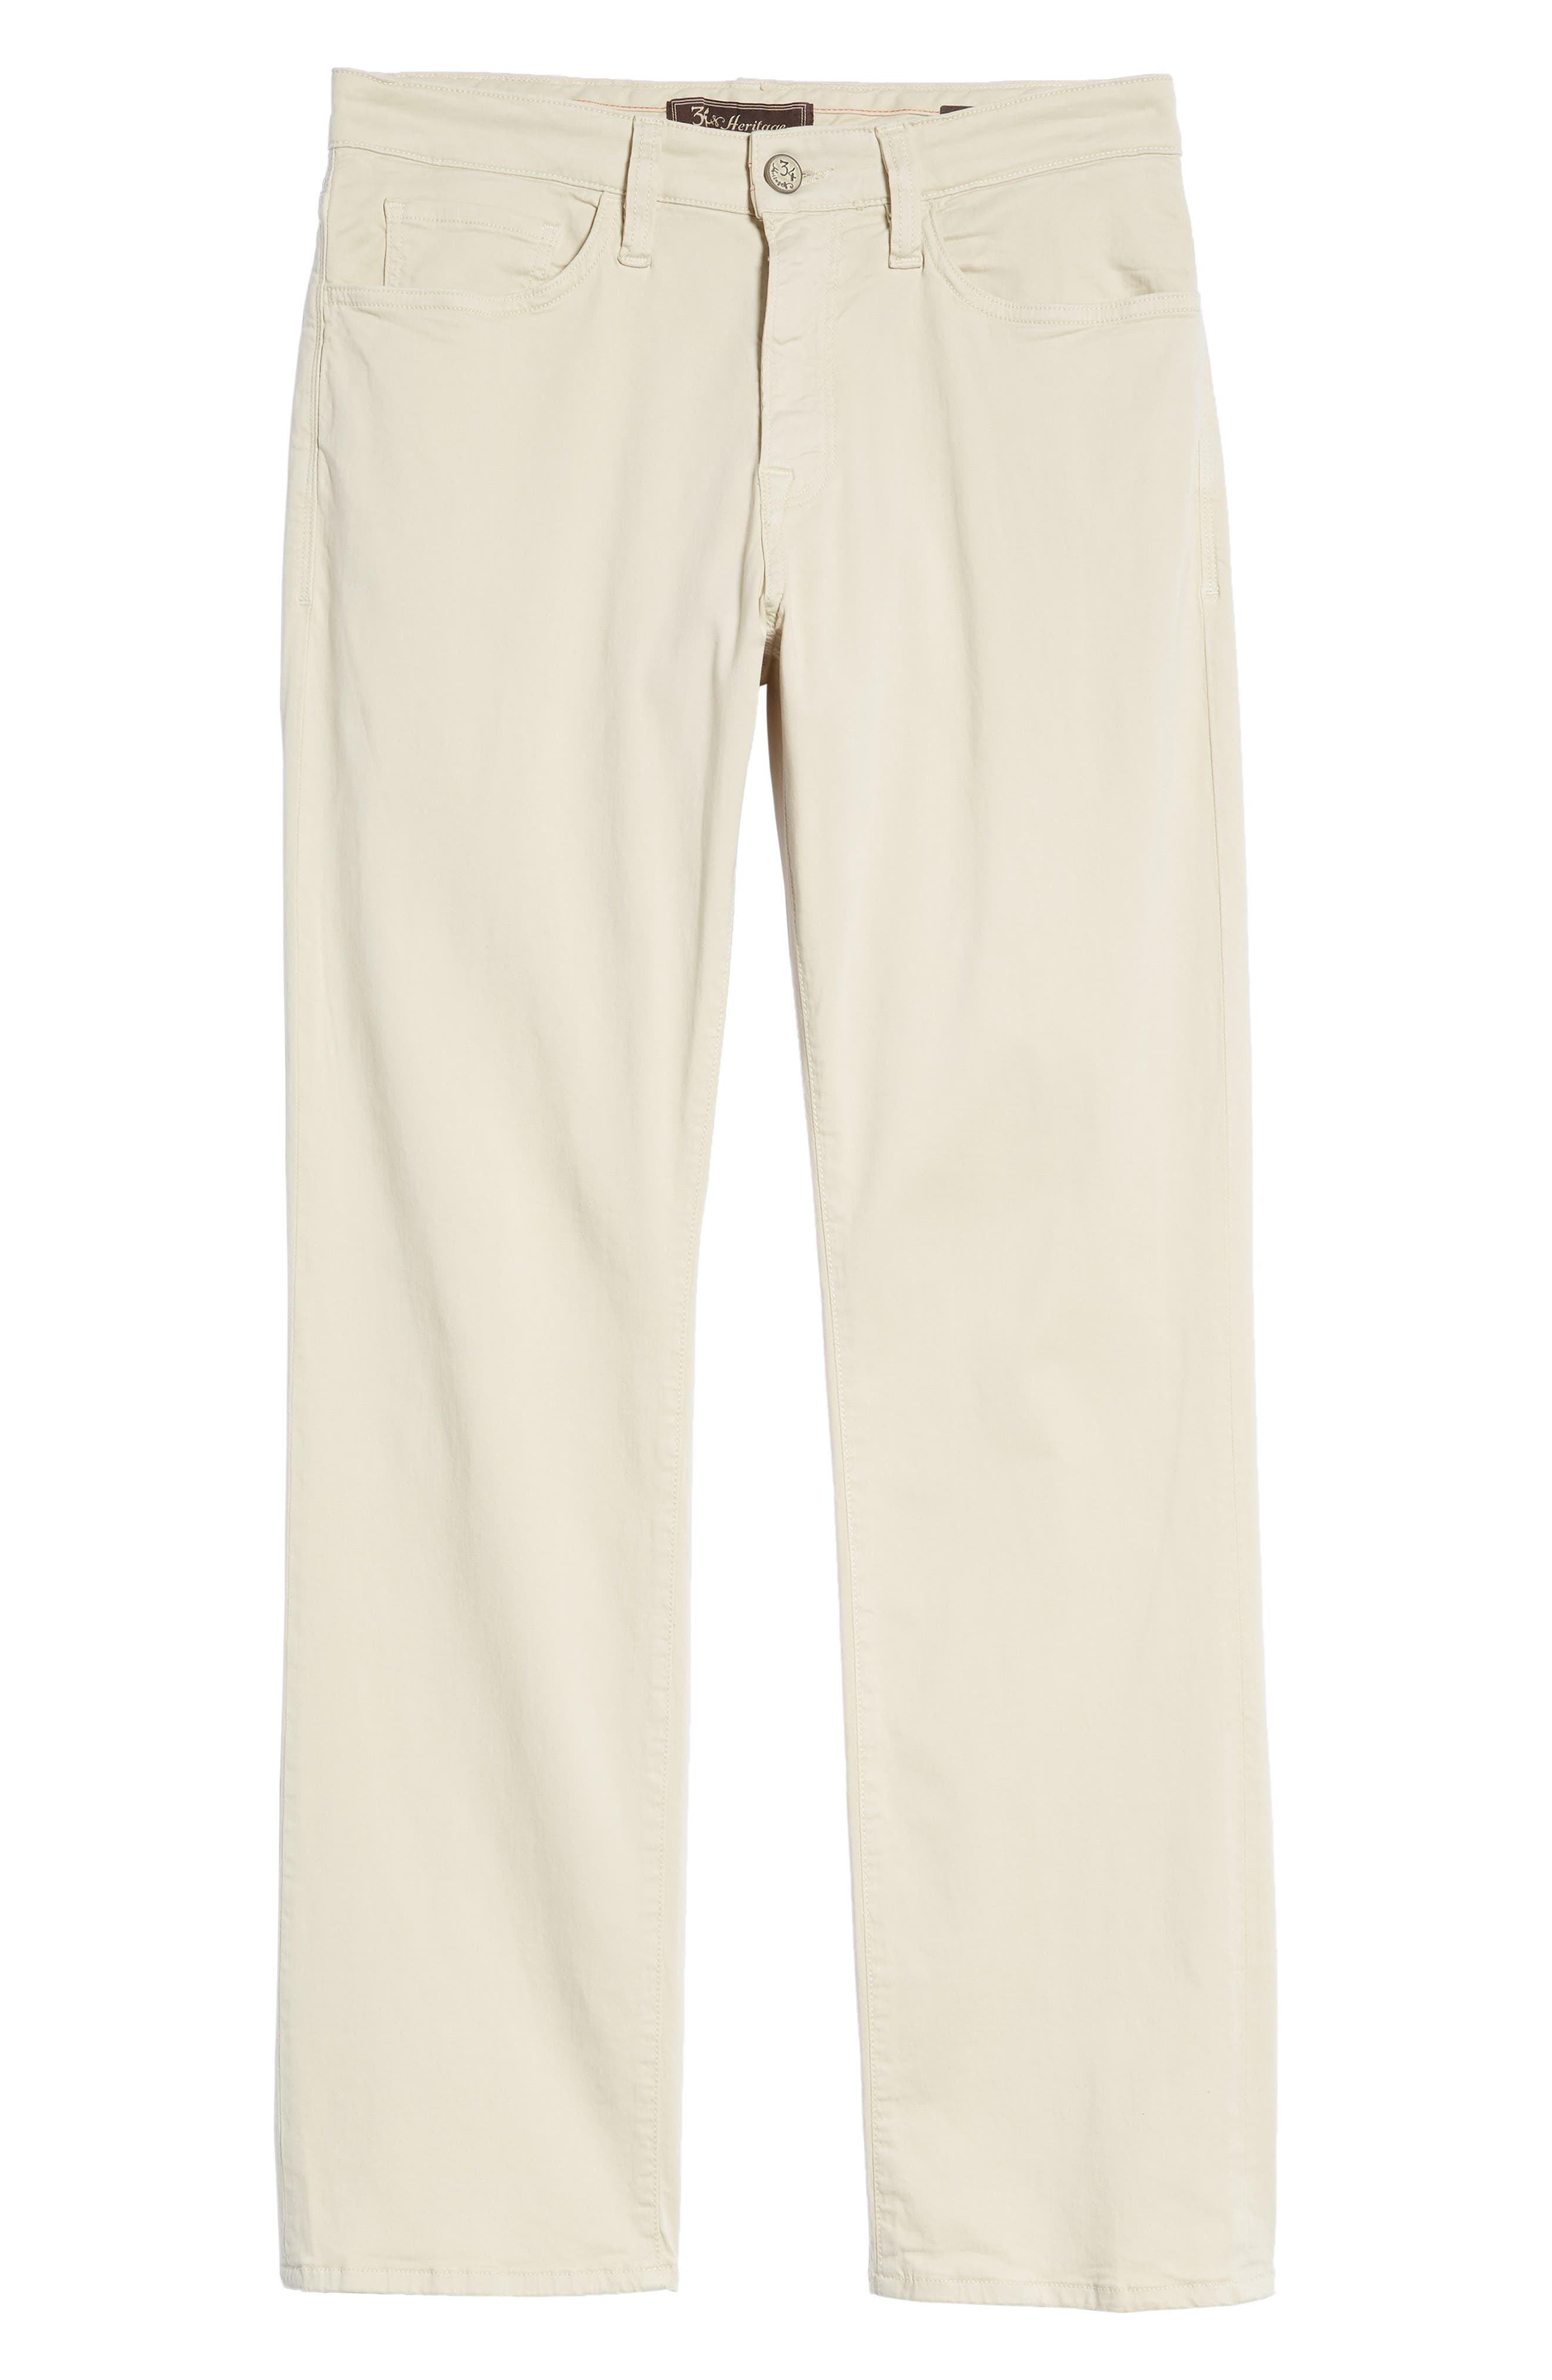 Charisma Relaxed Fit Jeans,                             Alternate thumbnail 6, color,                             BONE TWILL